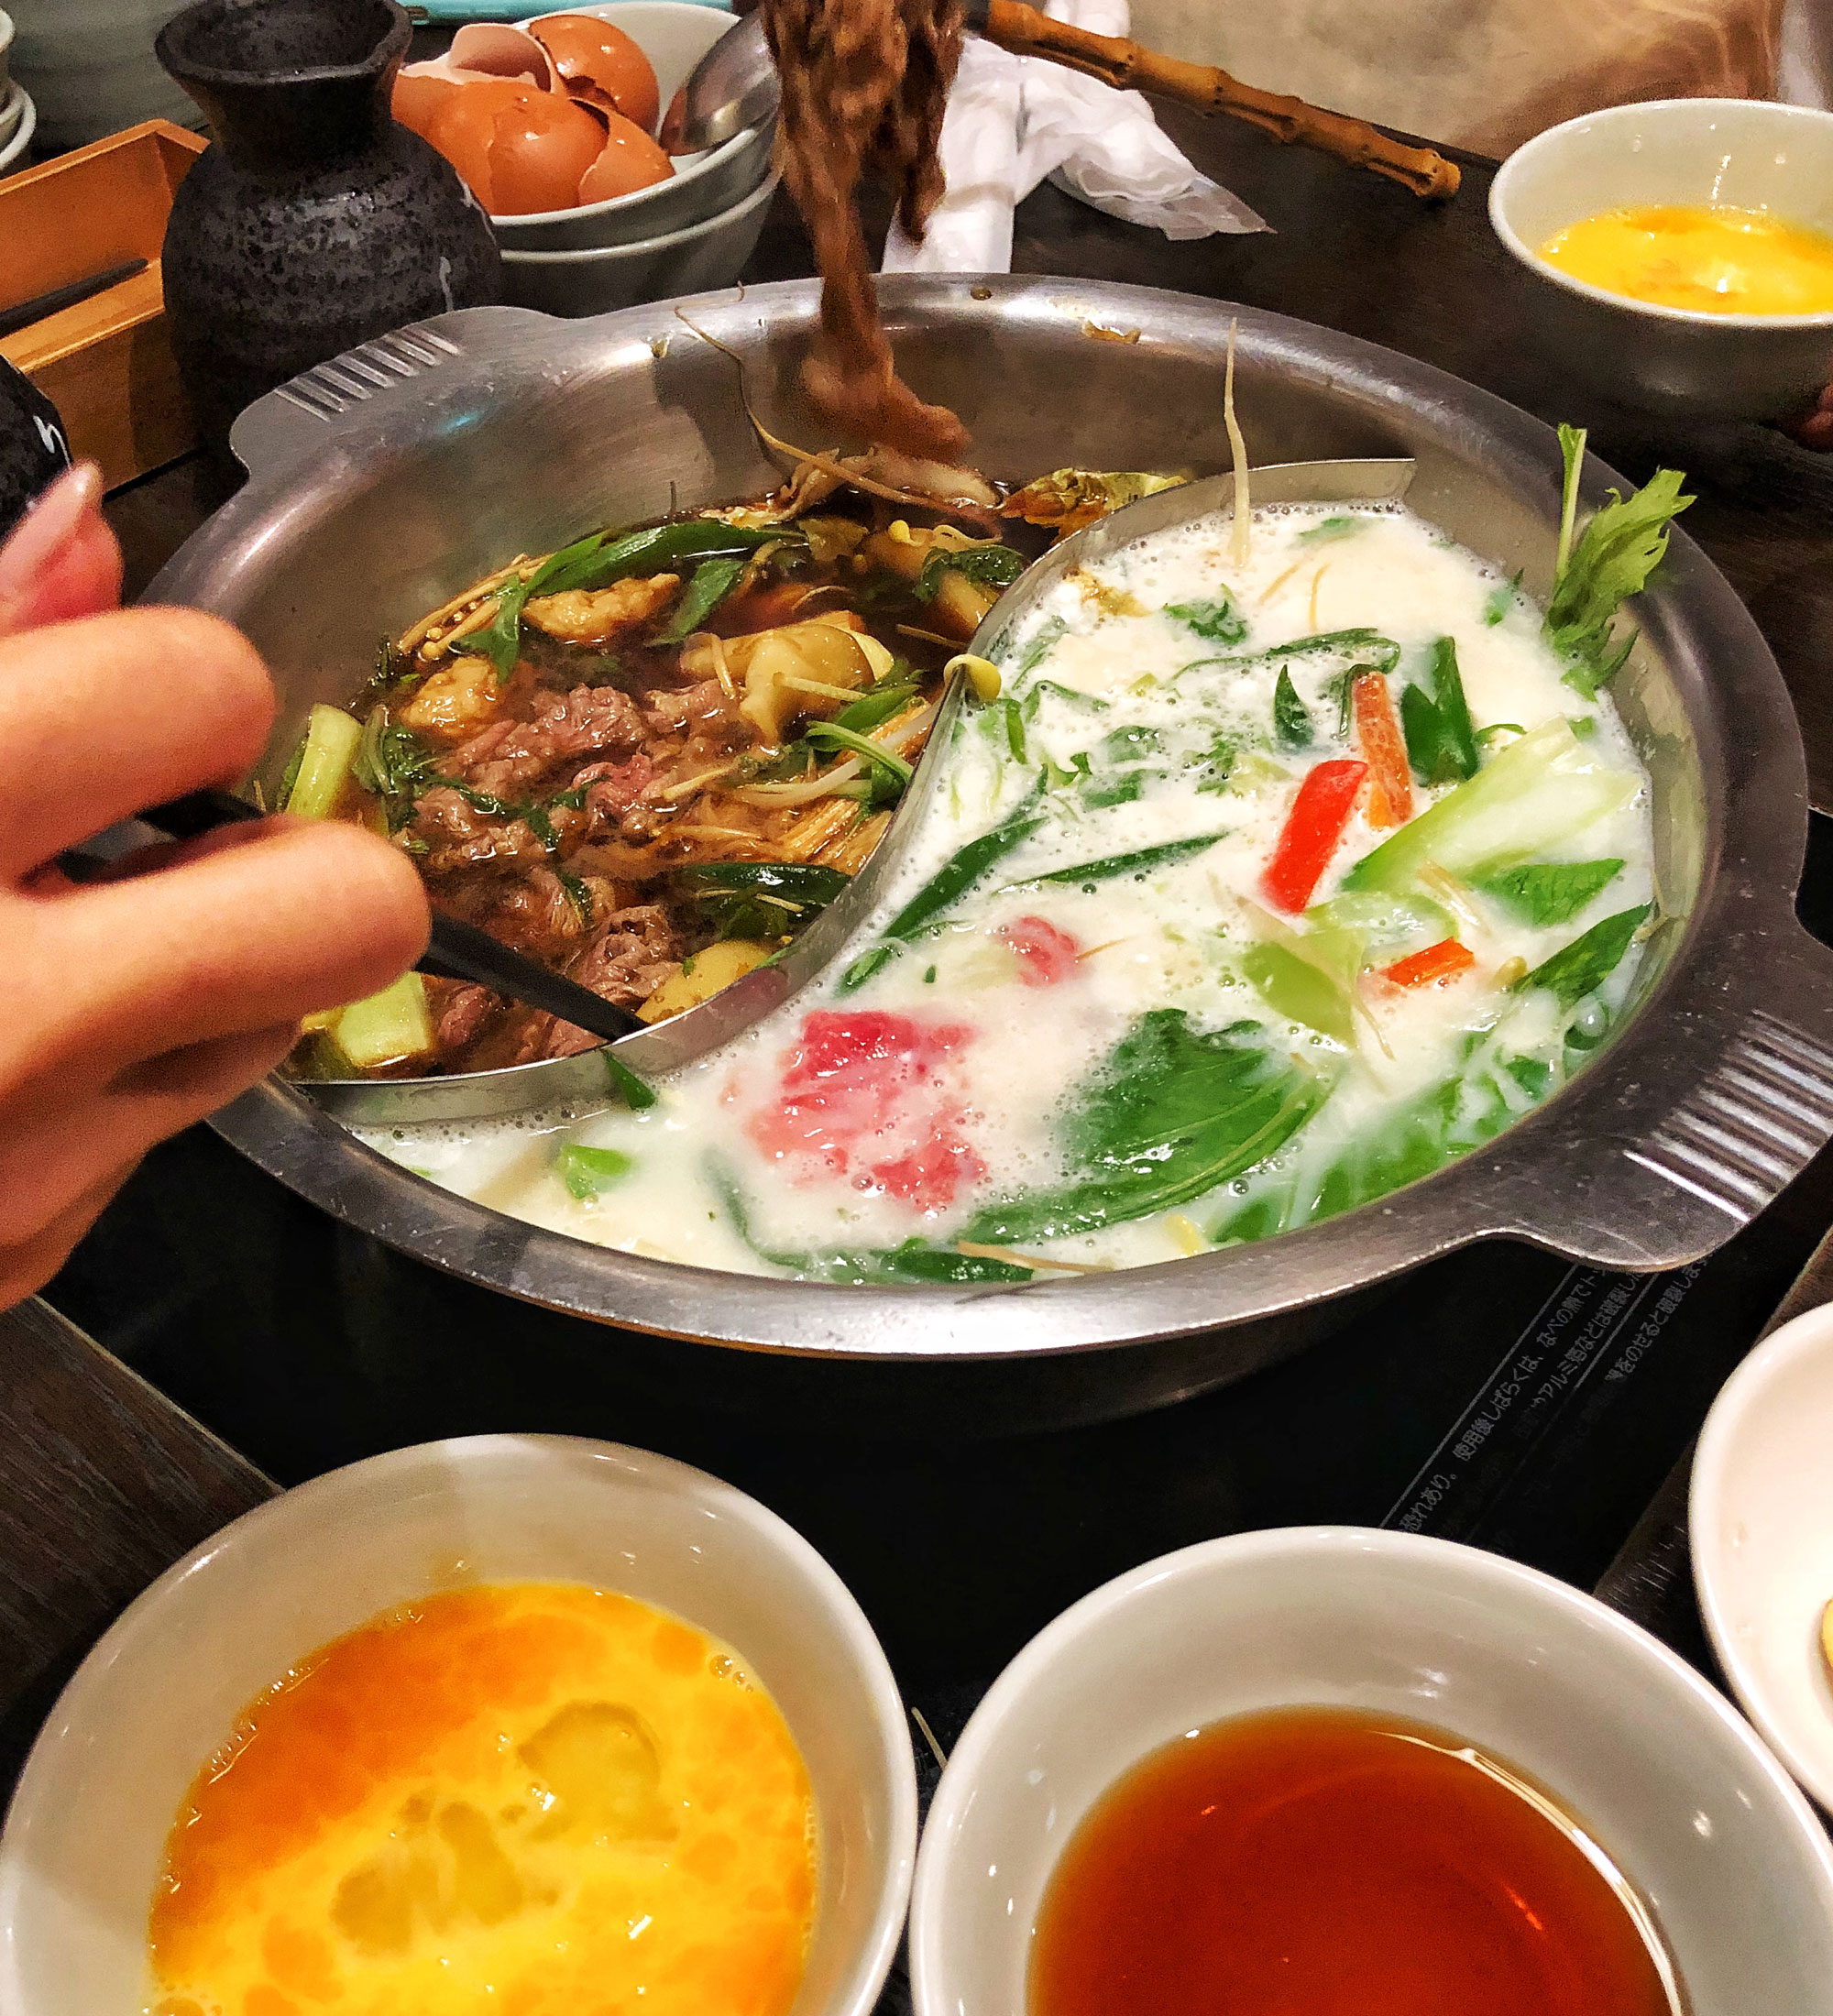 Image of food in a hot pot.